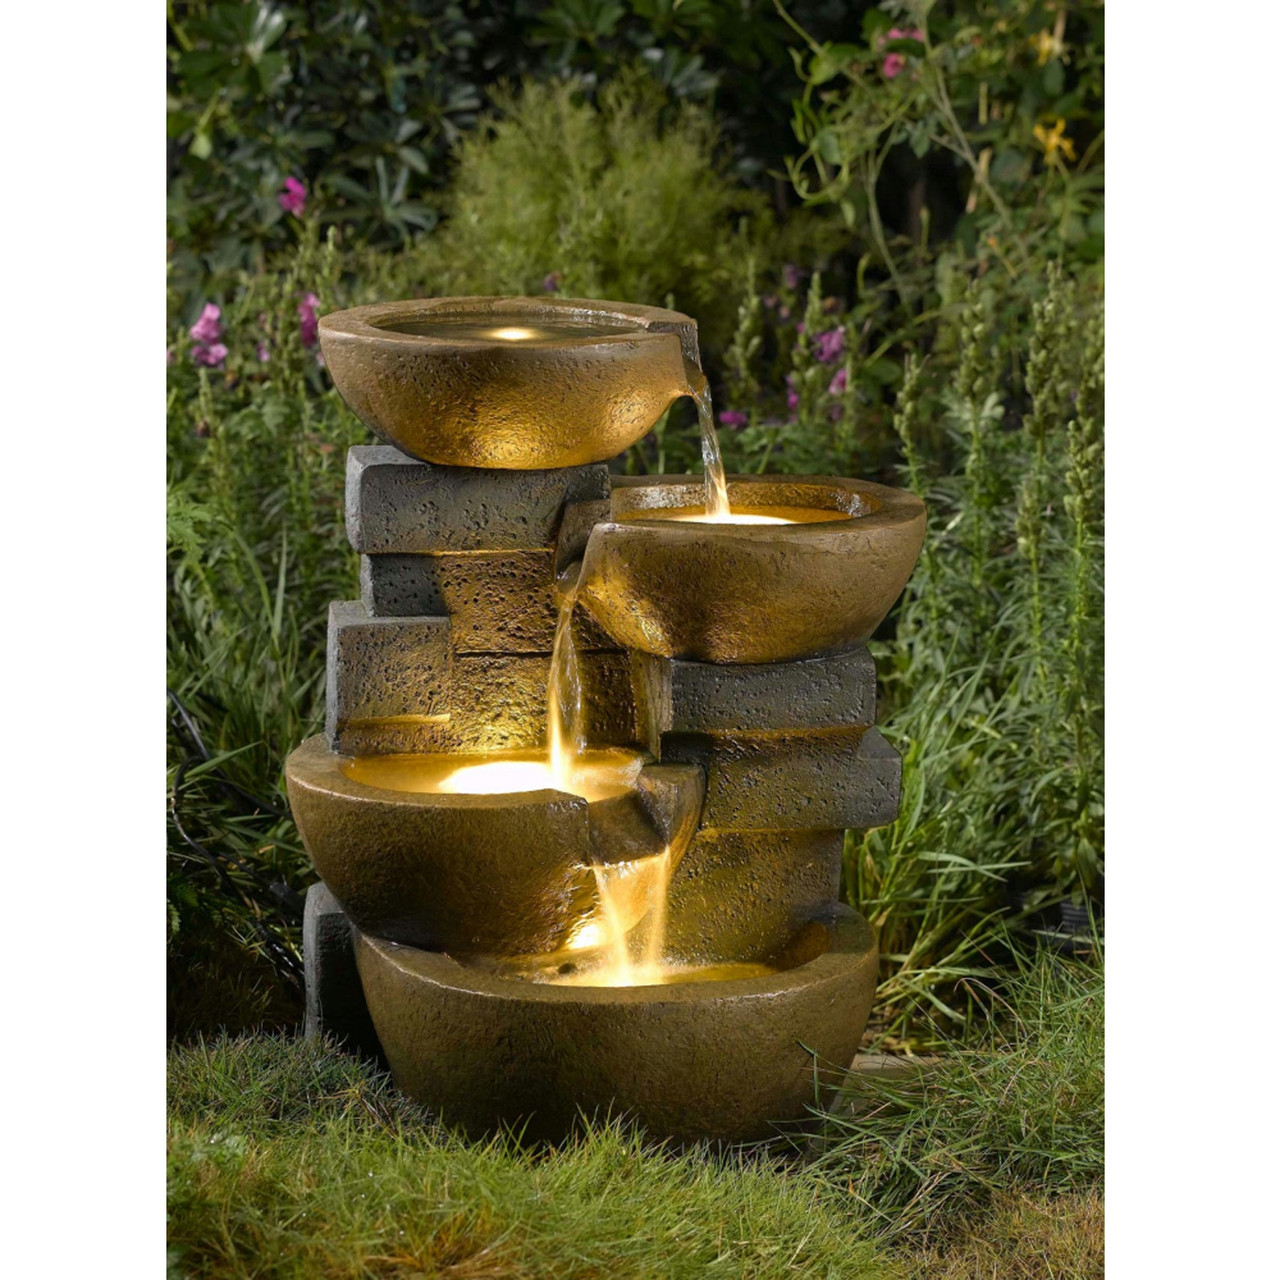 23 led lighted stacked pots rocks outdoor patio garden water 23 led lighted stacked pots and rocks outdoor patio garden water fountain 31555939 aloadofball Image collections